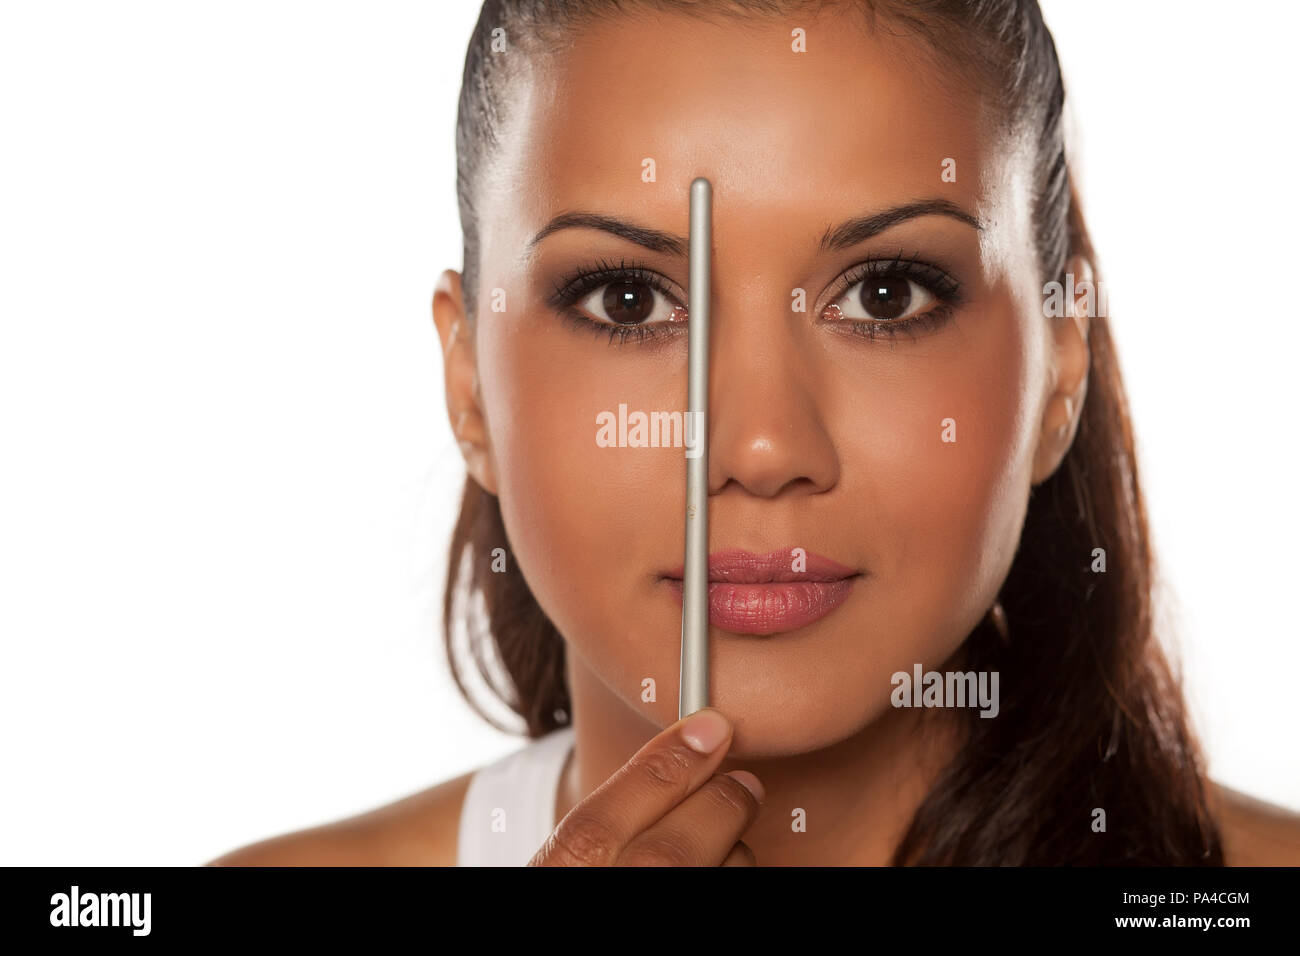 young beautiful latina shows the correct length and shape of the eyebrows - Stock Image